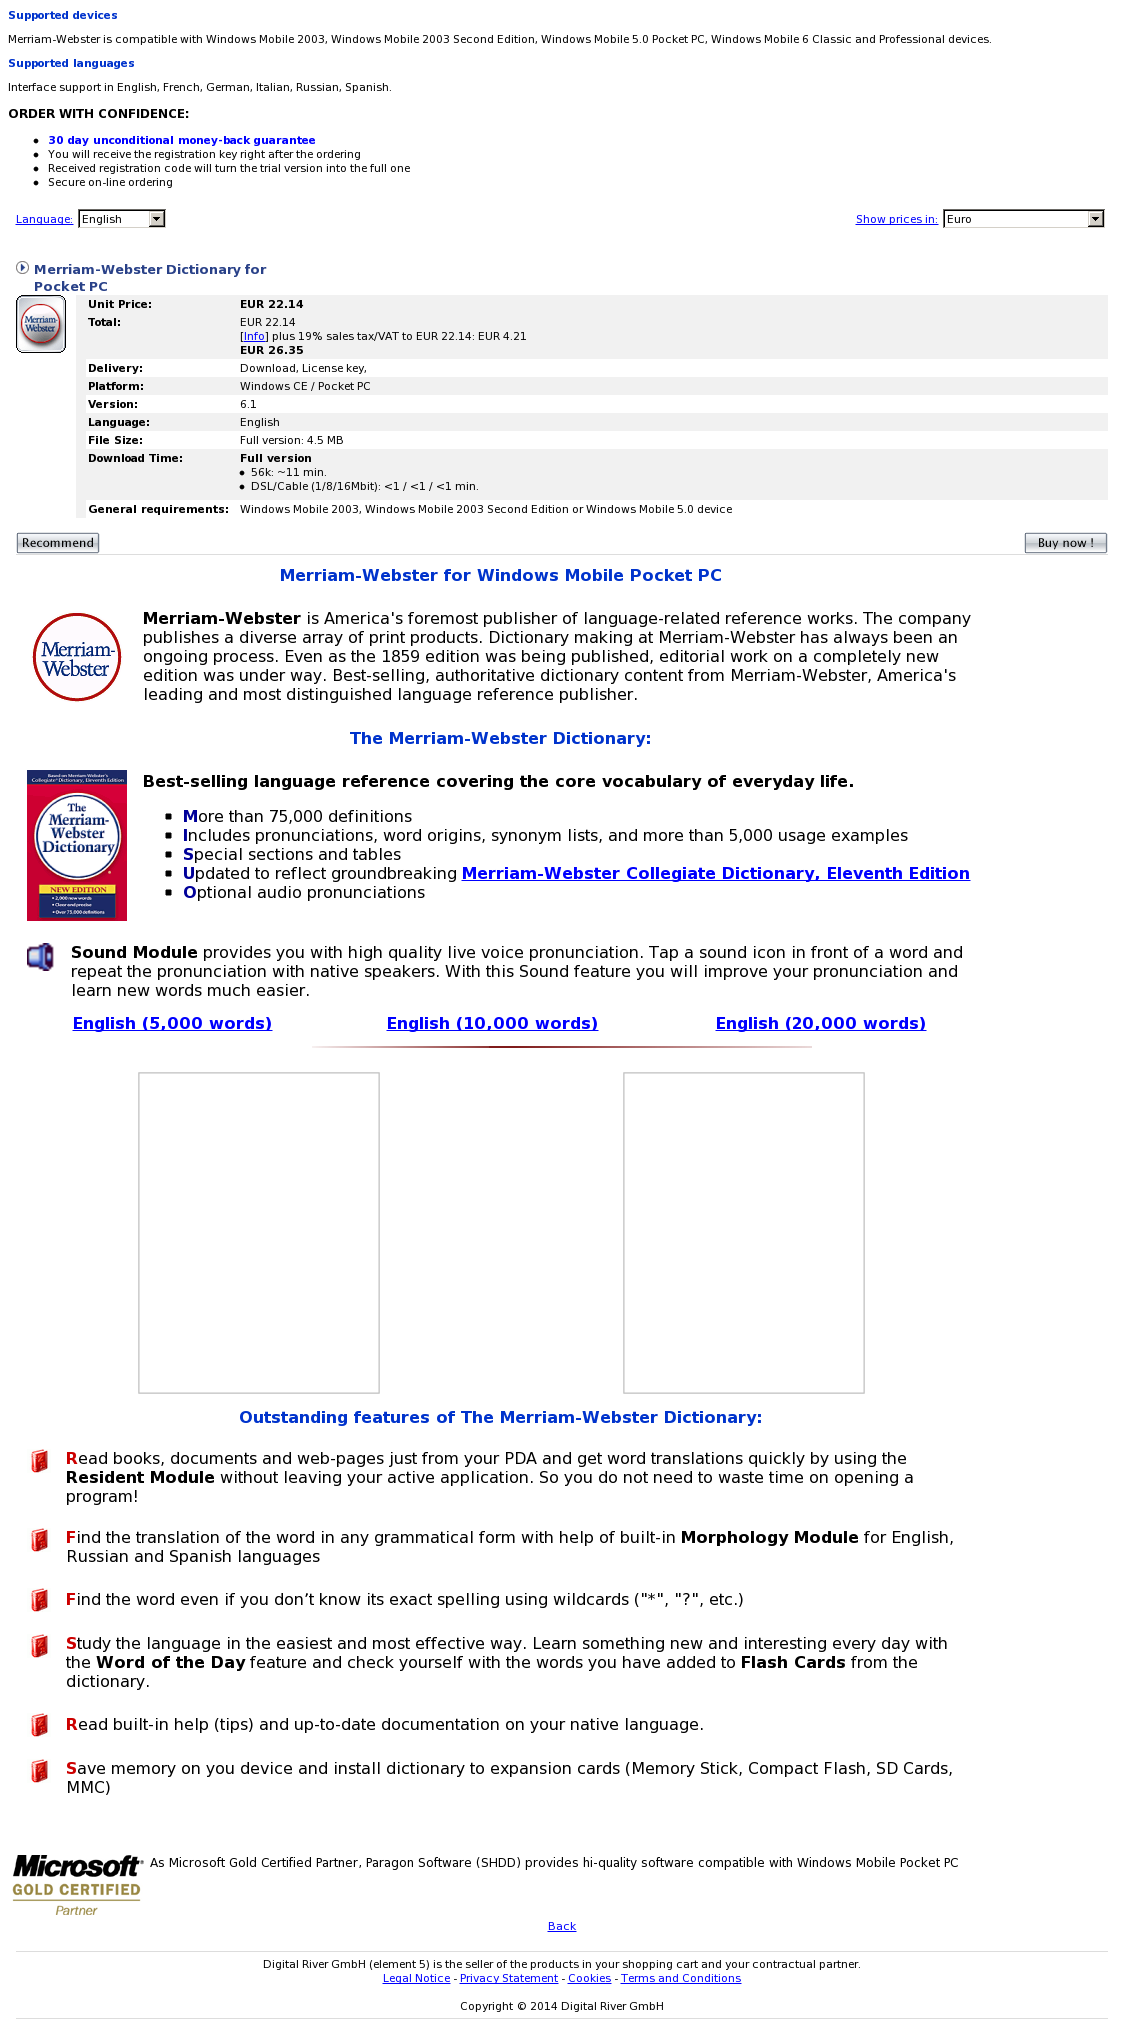 Merriam-Webster Dictionary for Pocket PC